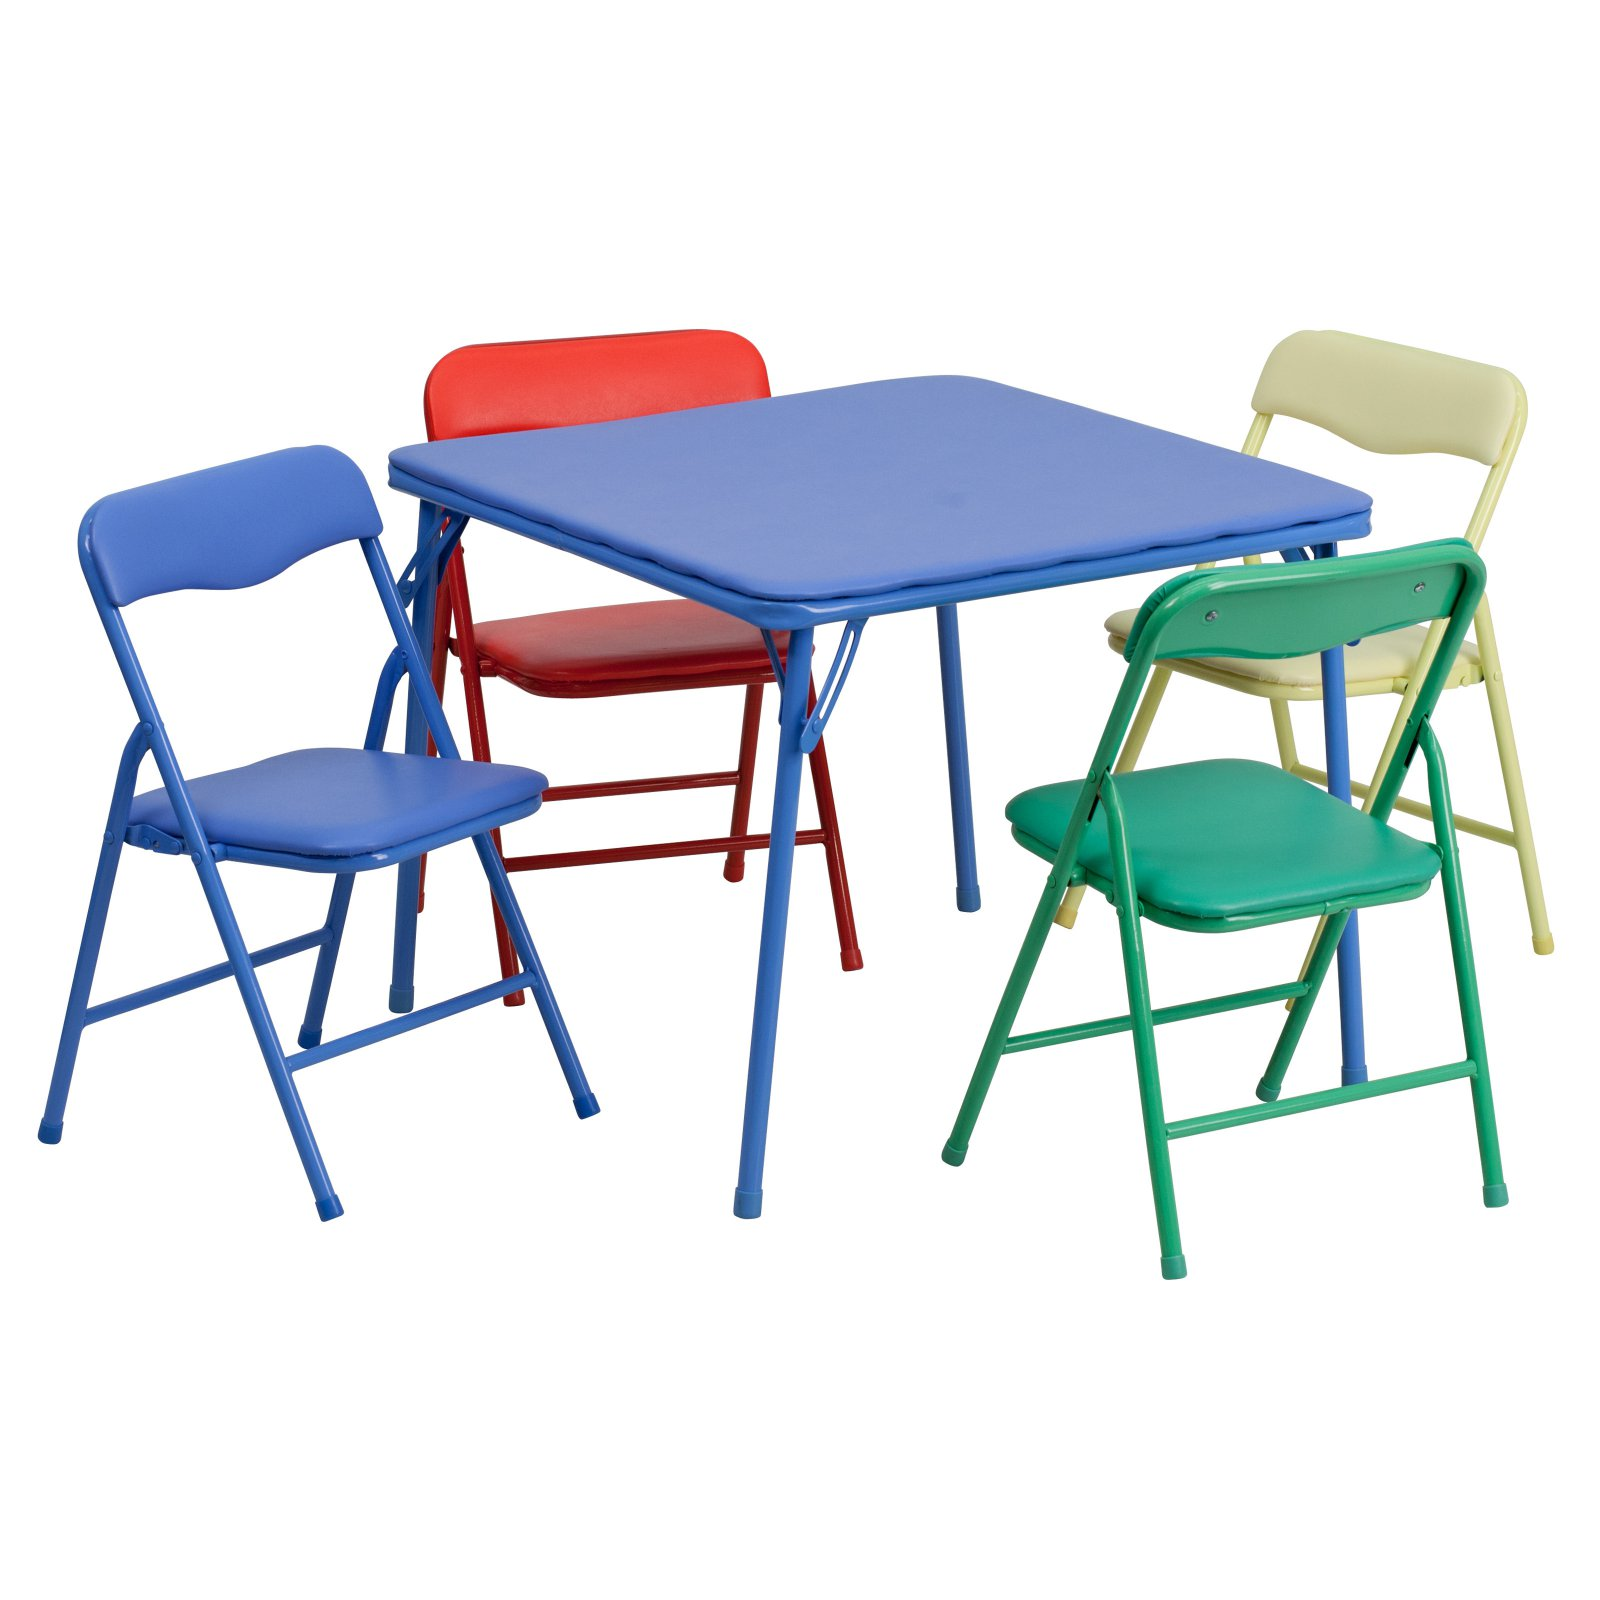 Superieur Flash Furniture Kids Colorful 5 Piece Folding Table And Chair Set